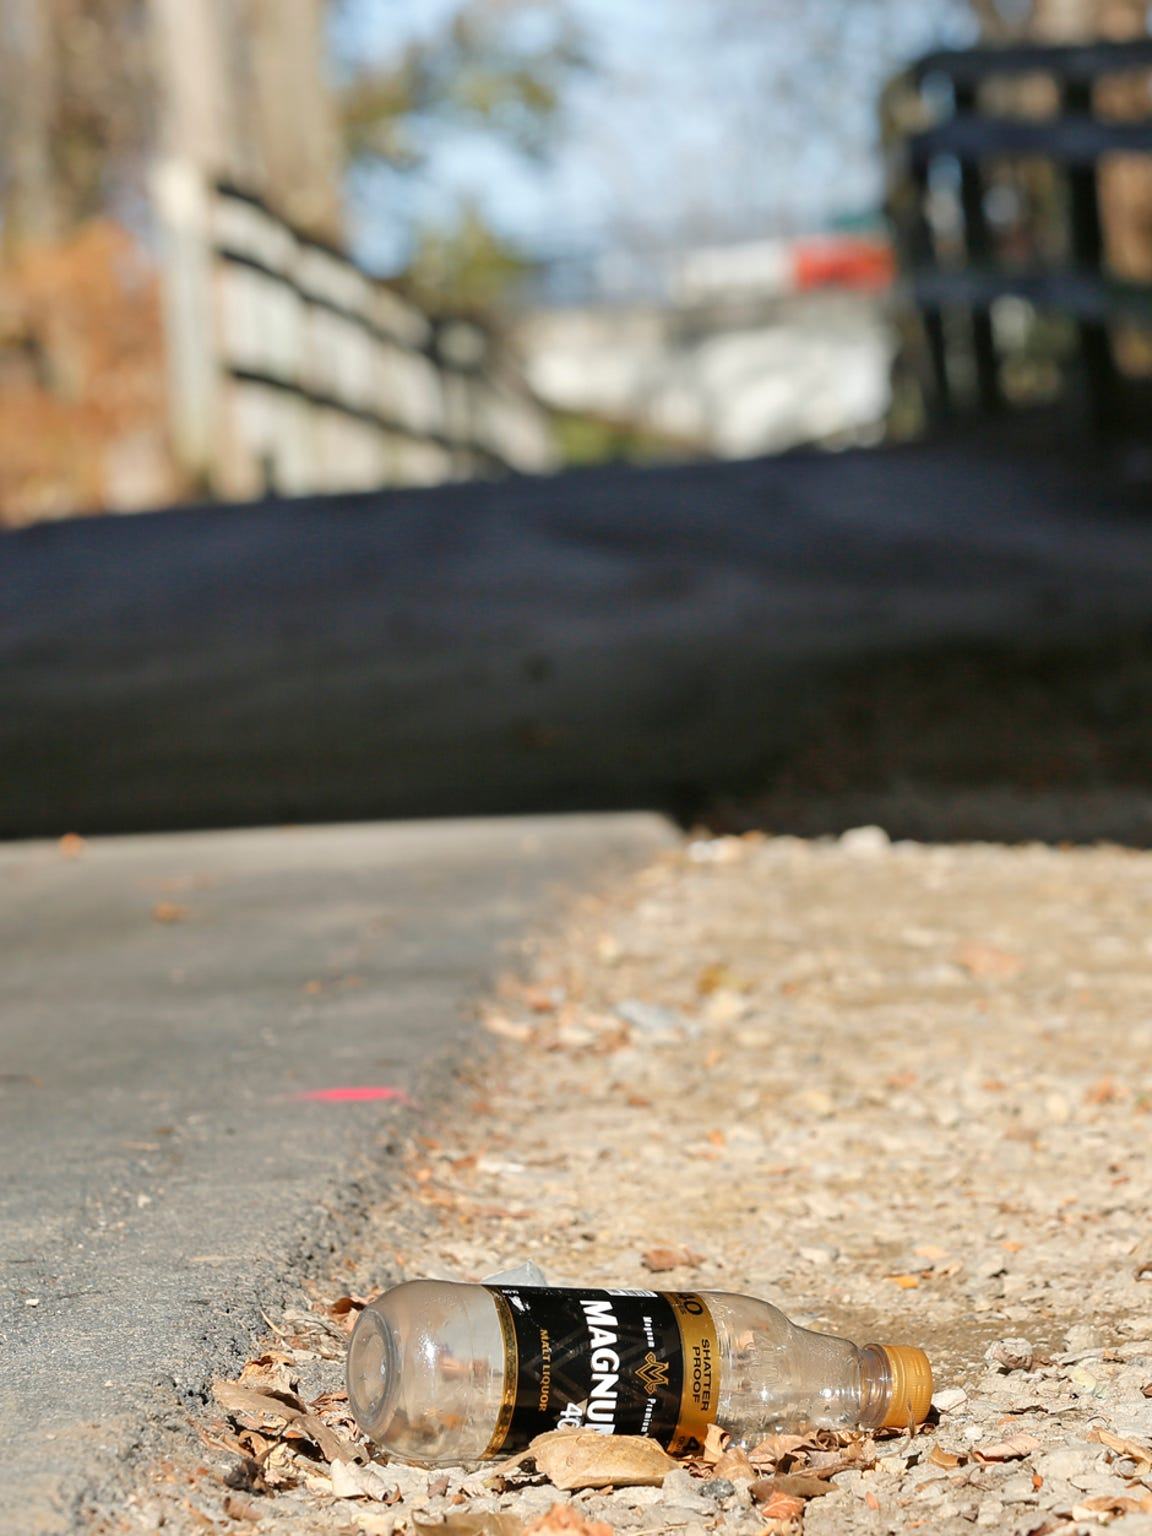 An empty beer bottle lies next to the Wabash Heritage Trail Thursday, November 19, 2015, beneath the State Street bridge in West Lafayette. A homeless man in the area said the bottle and other trash nearby were left behind by other homeless, who often gather beneath the bridge.